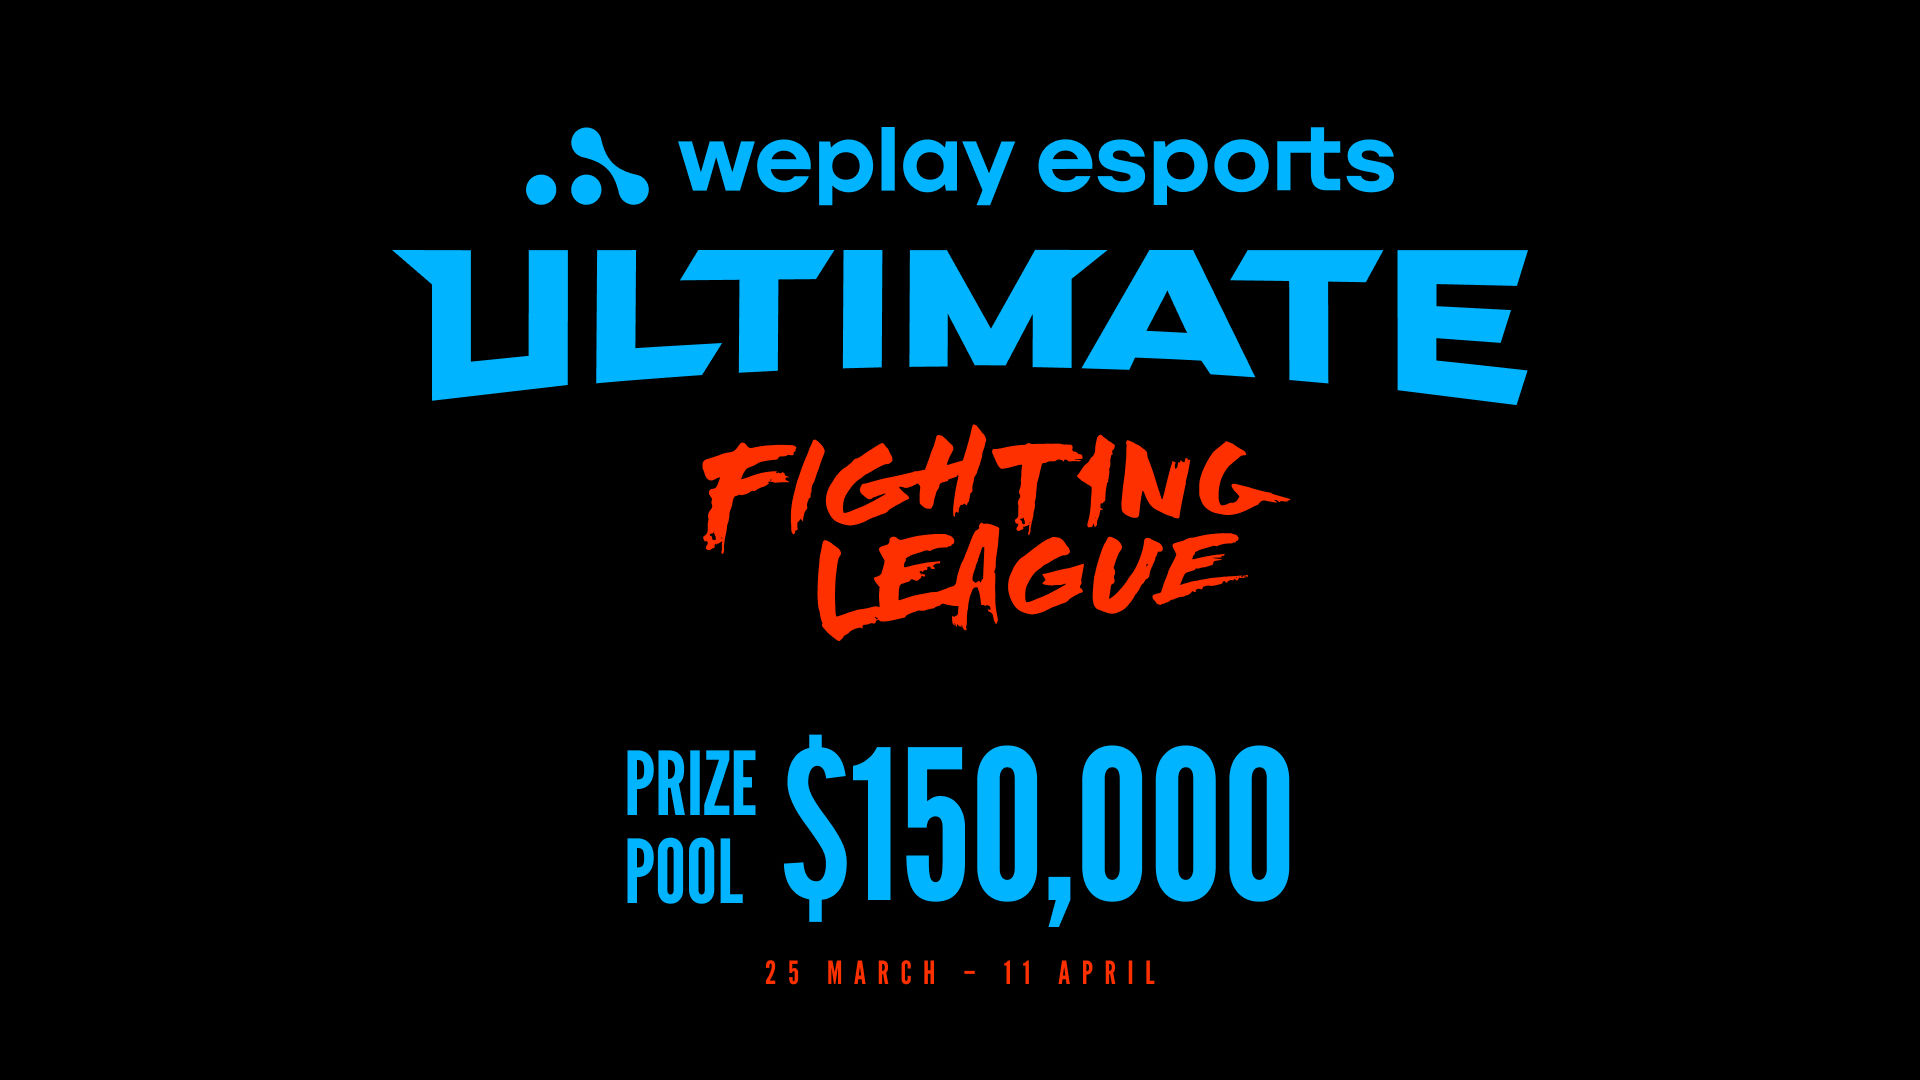 WePlay Esports and Olexander Usyk announced the dates for the first season of the WUFL esports fighting league